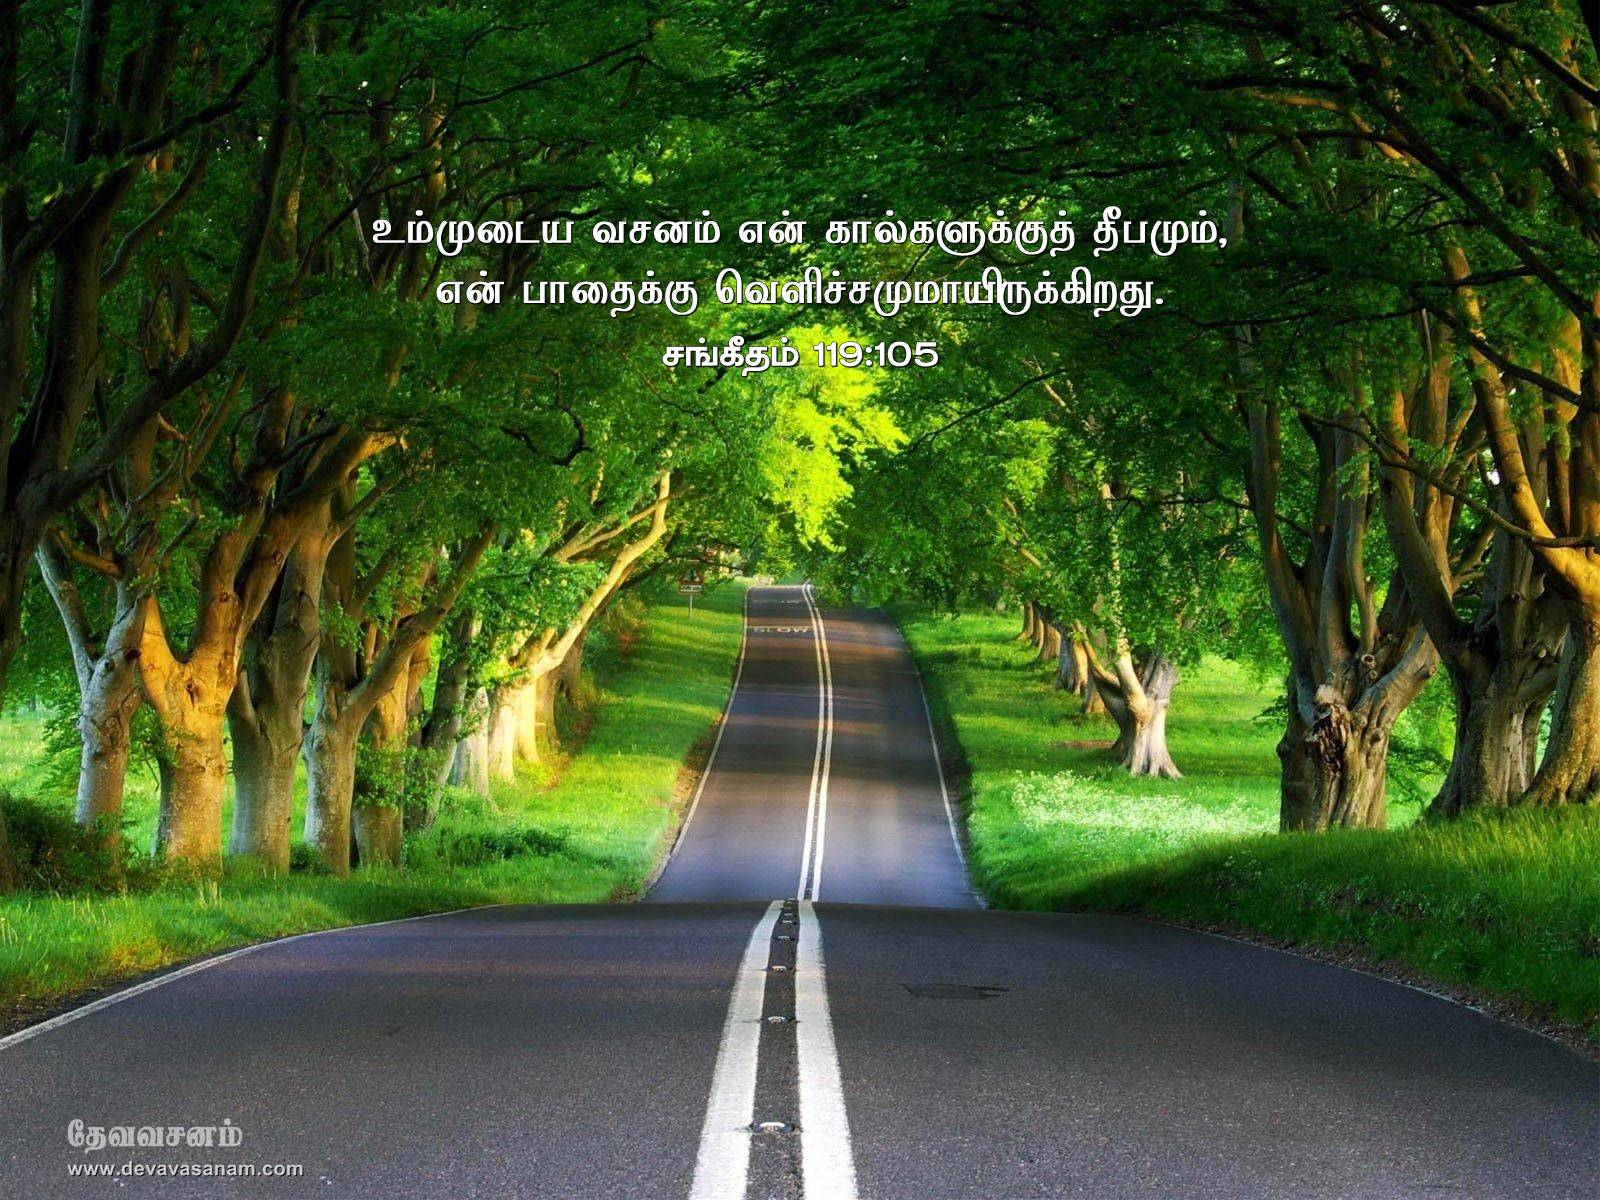 Bible Quotes Tamil Bible Verse Wallpapers Tamil Mobile Wallpapers 1600x1200